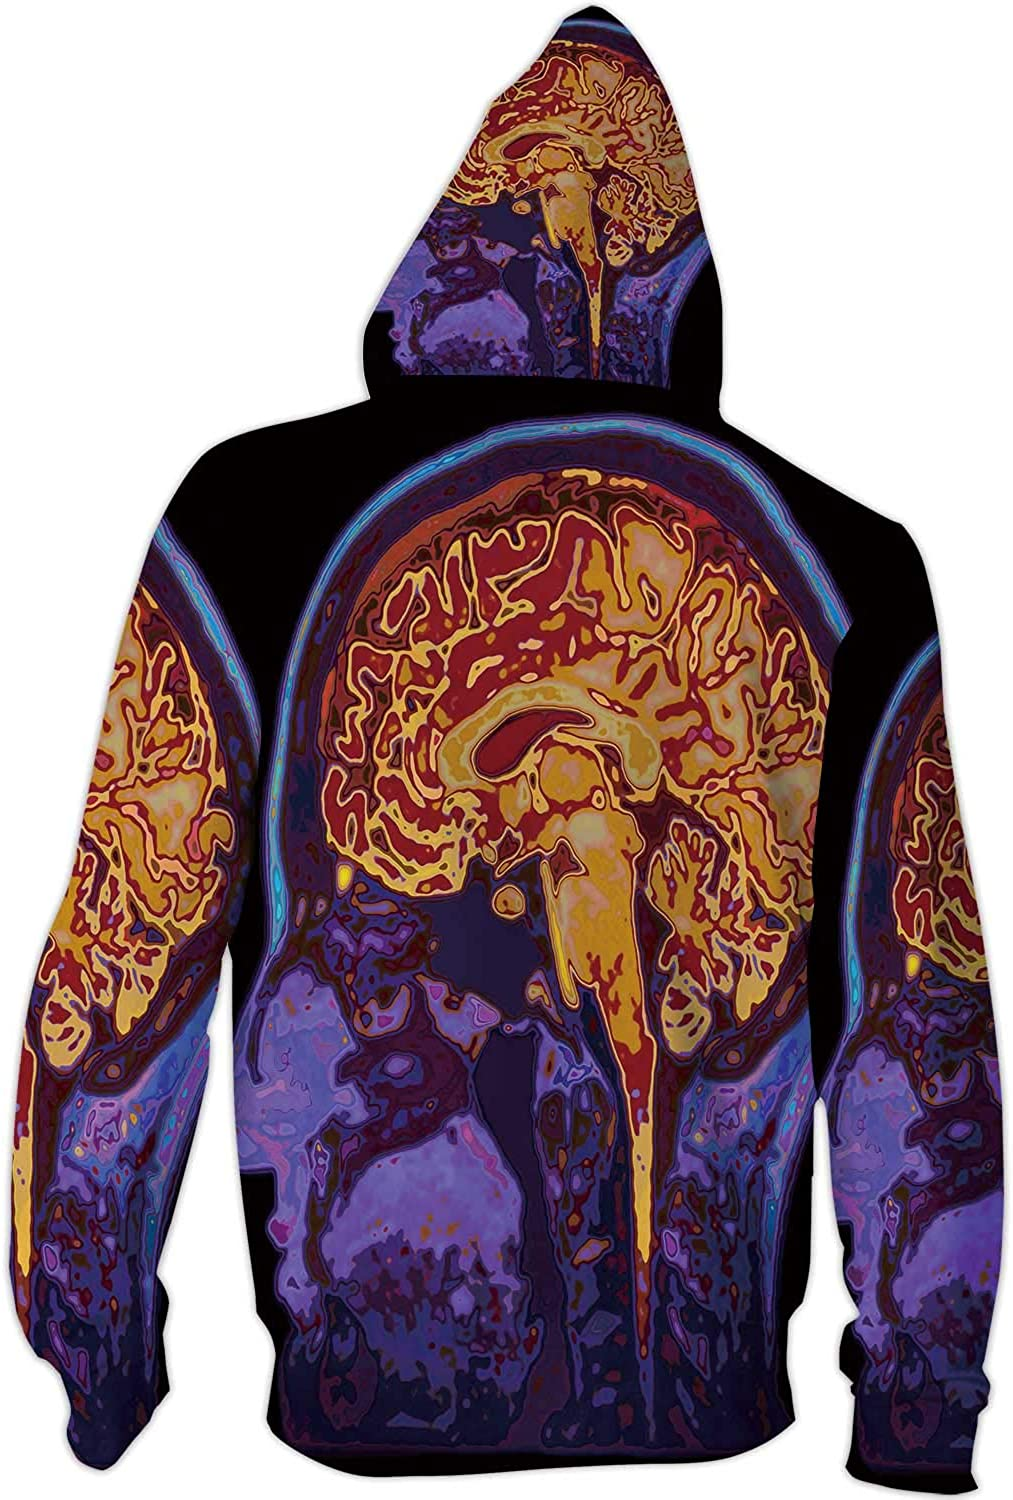 Illustration Father,Men//Womens Warm Outerwear Jackets and Hoodies Playing S C COABALLA Father and Son